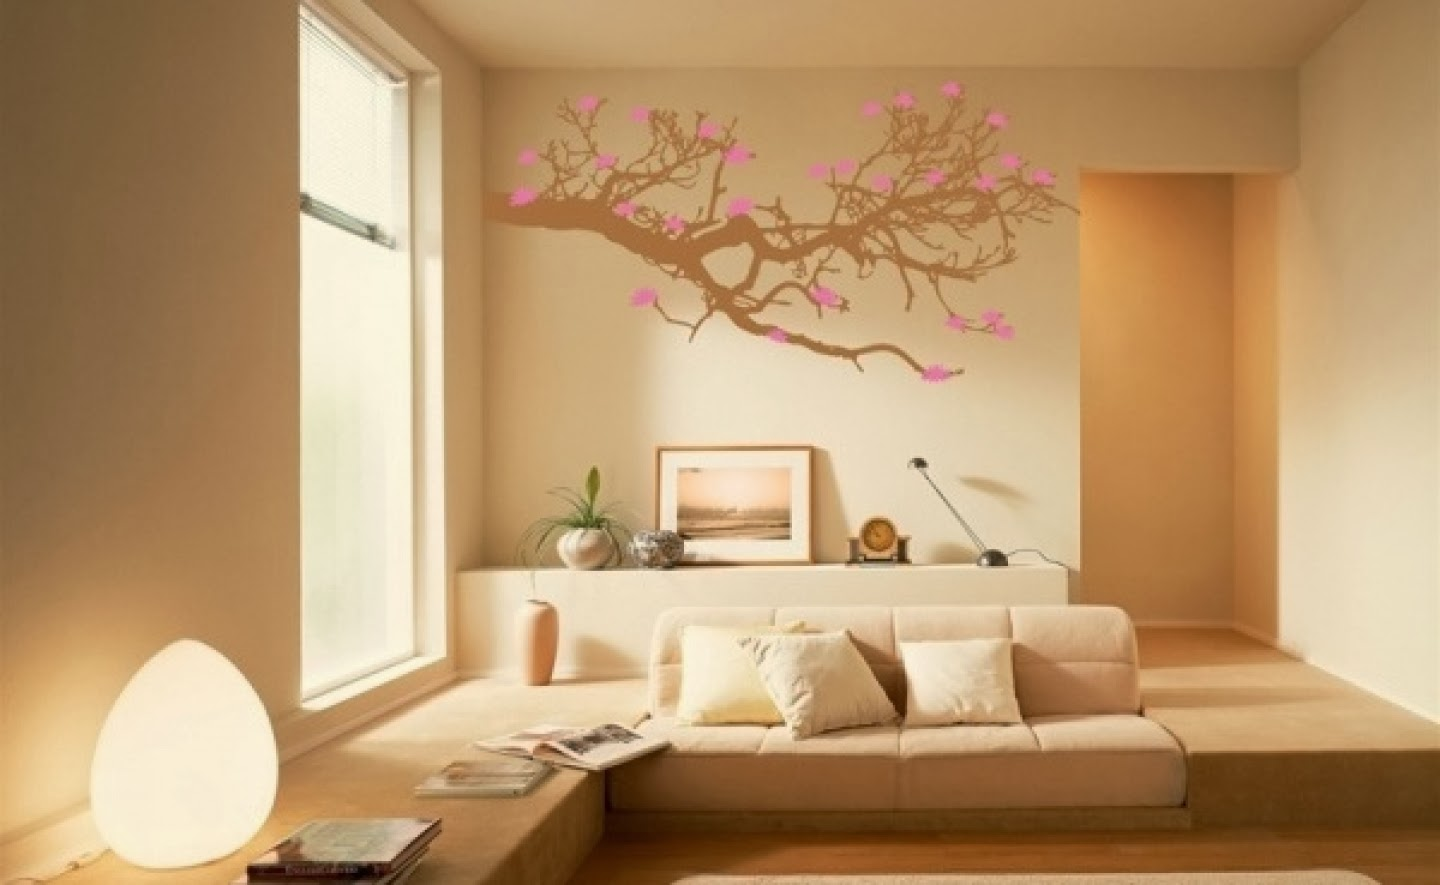 Wallpapers creative wall painting ideas bedroom for Wall designs with paint for a bedroom